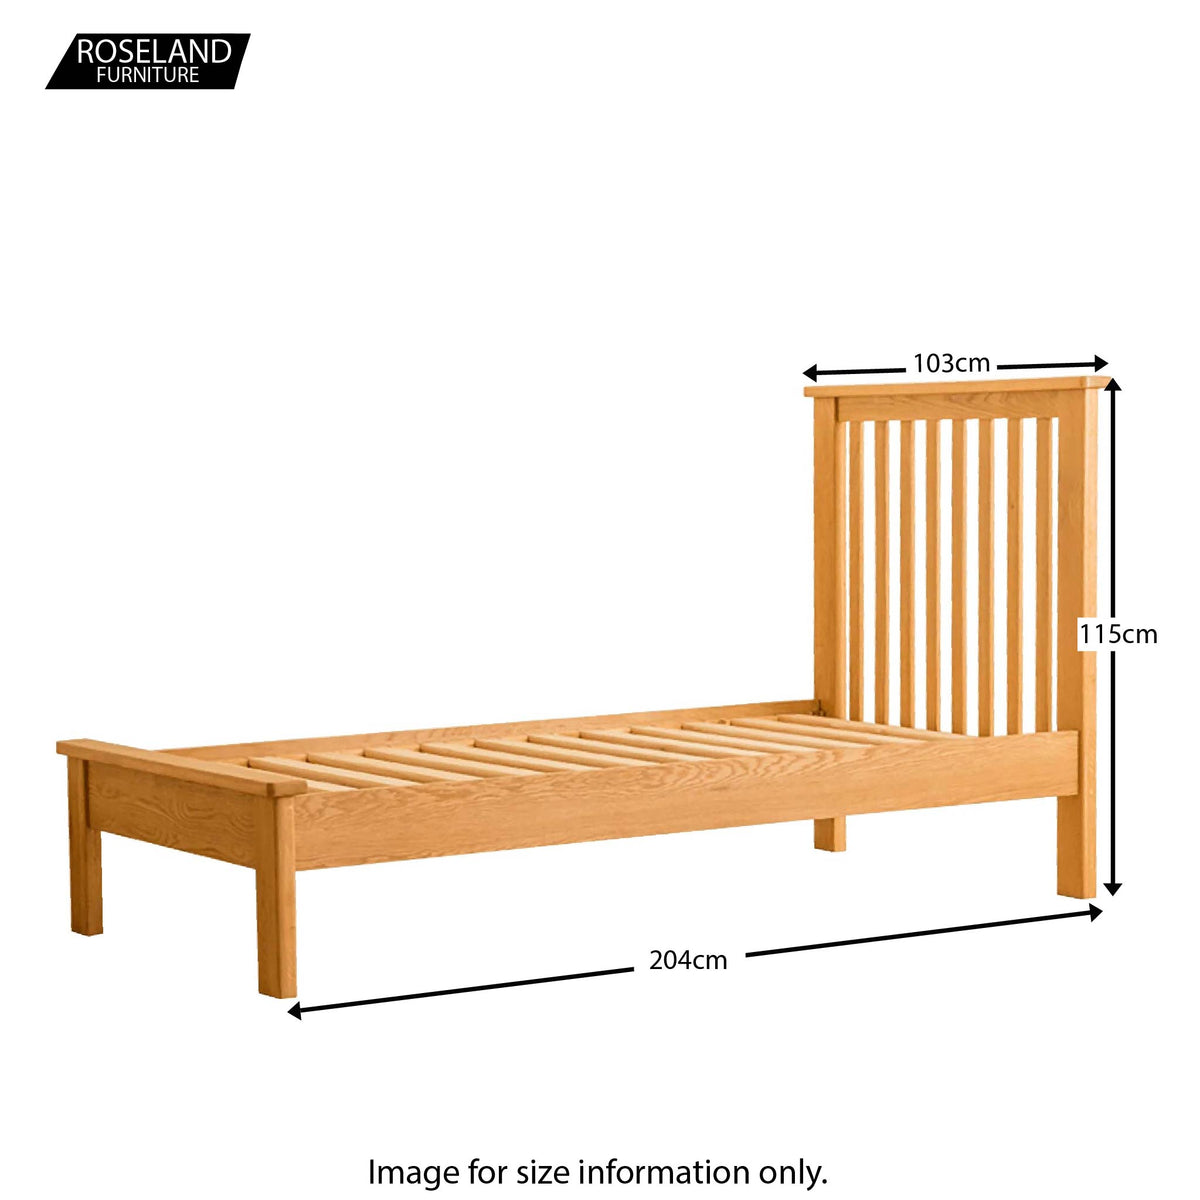 Roseland Oak 3ft Bed - Size Guide